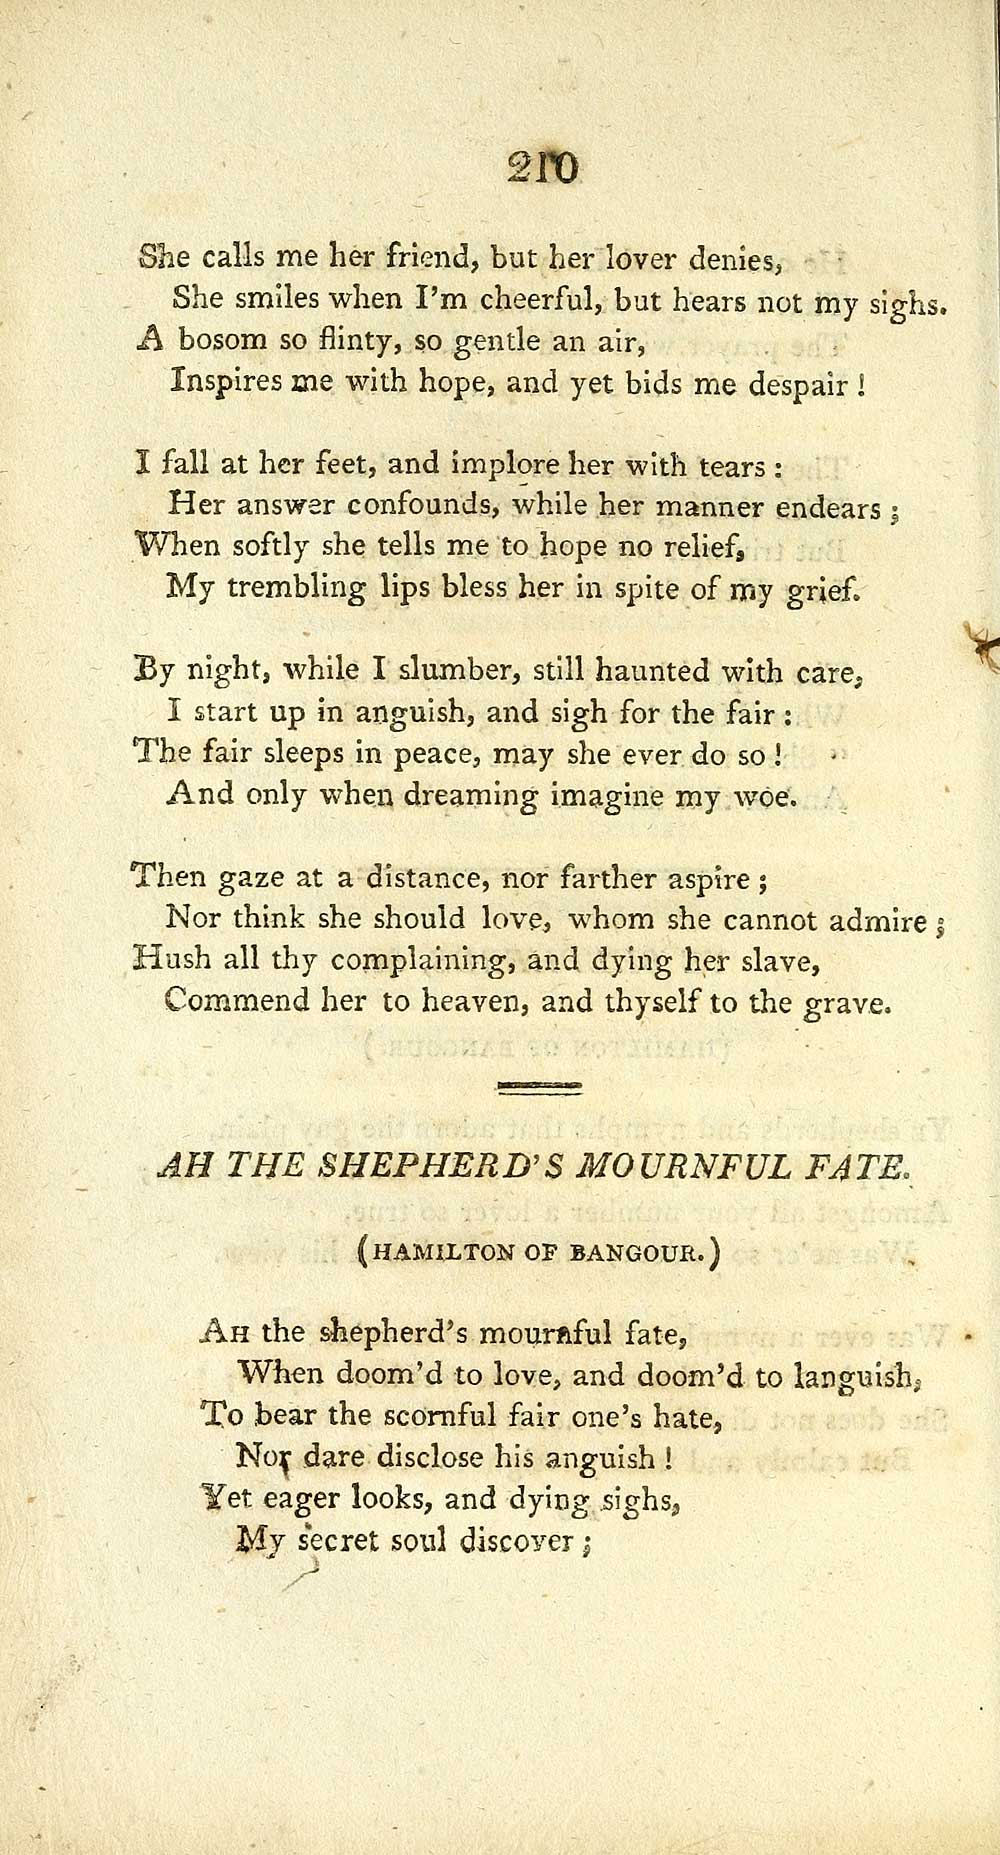 216) Page 210 - Ah the shepherd's mournful fate - Glen Collection of